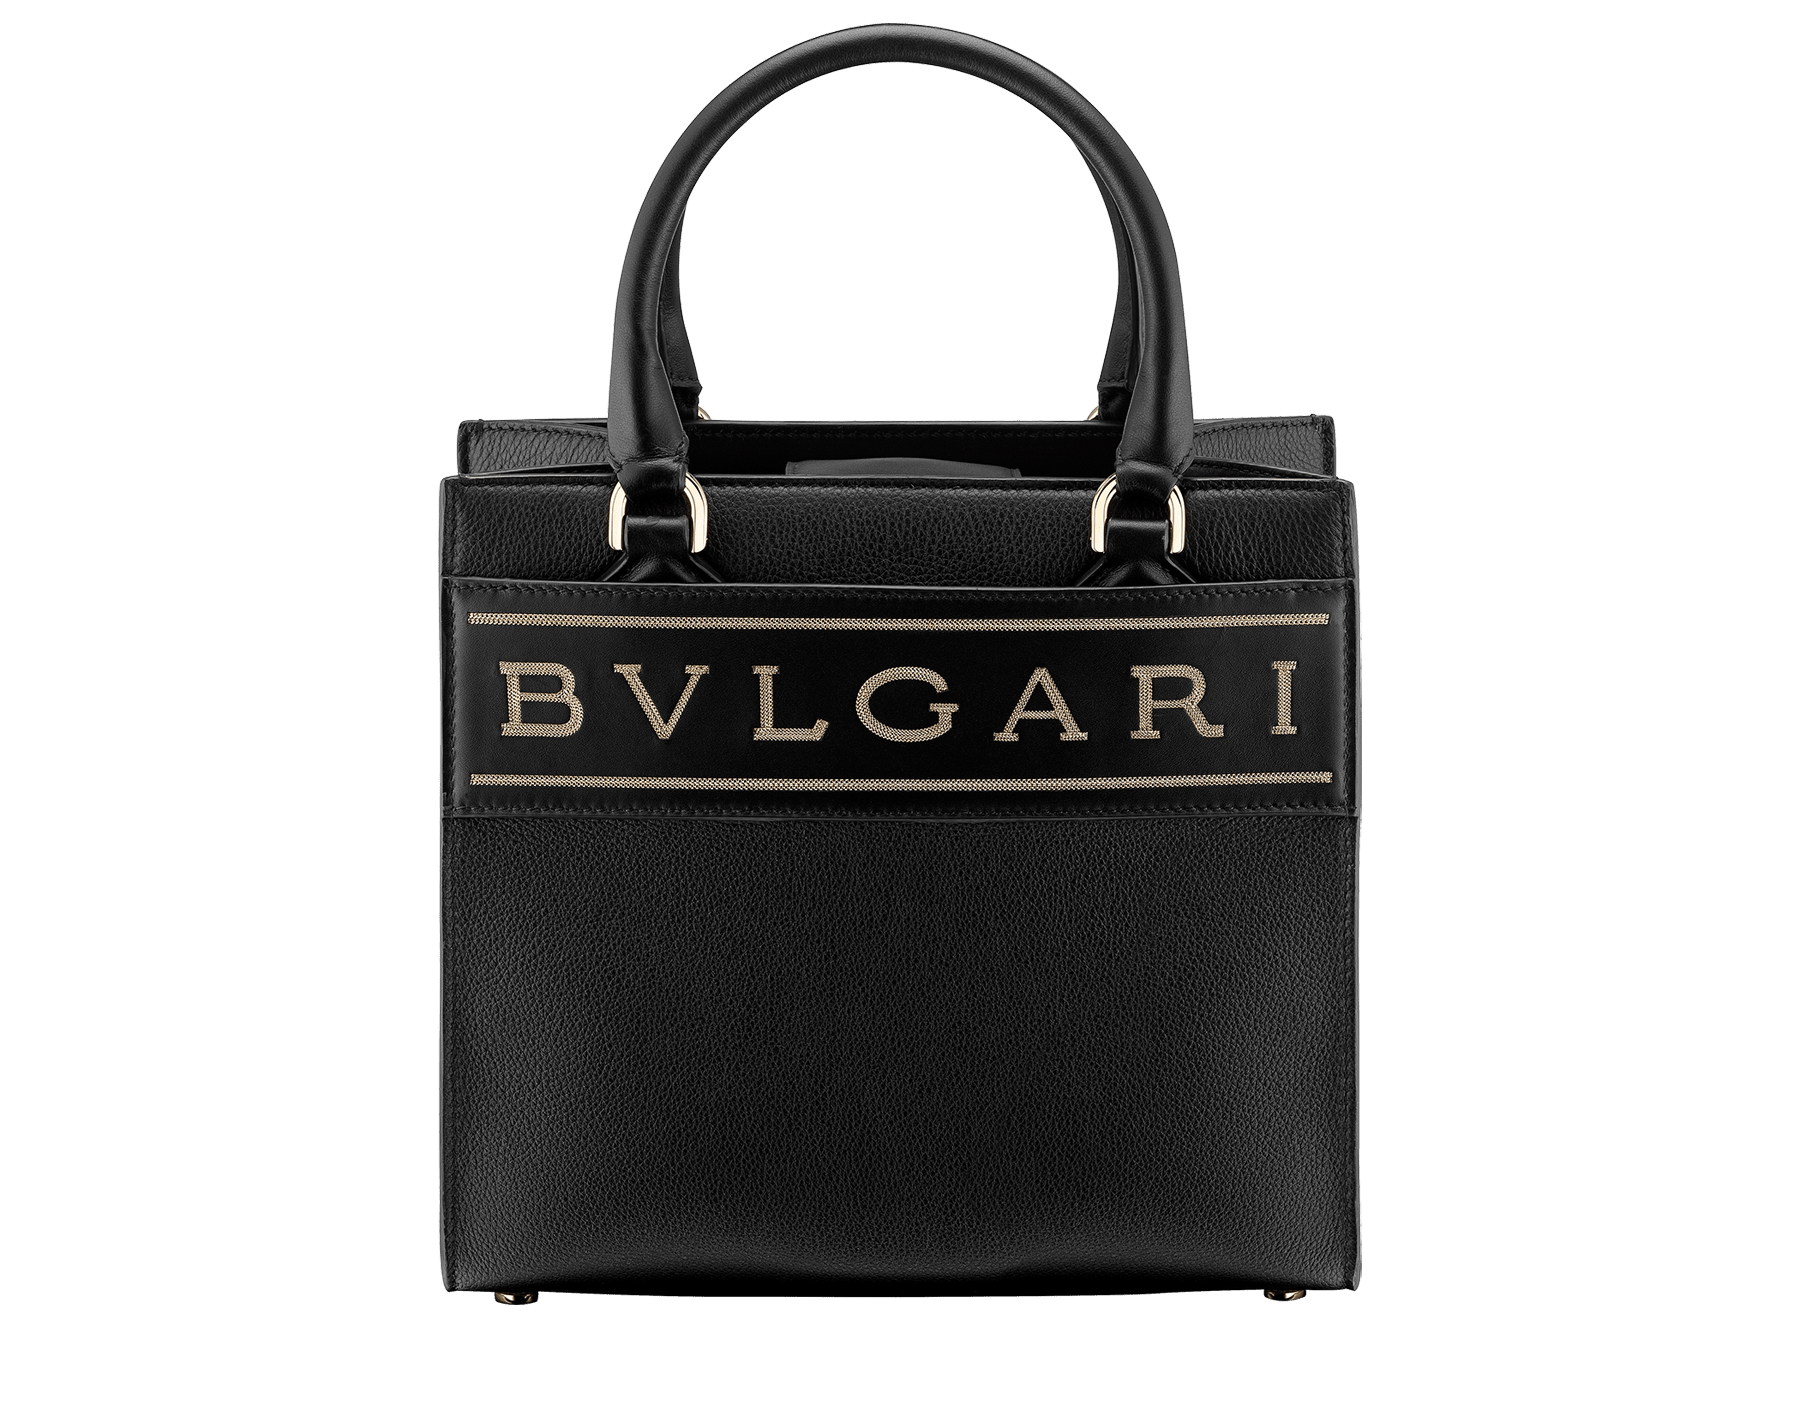 """""""Bvlgari Logo"""" small tote bag in Ivory Opal white calf leather, with Beet Amethyst purple grosgrain inner lining. Bvlgari logo featured with light gold-plated brass chain inserts on the Ivory Opal white calf leather. BVL-1159-CL image 1"""